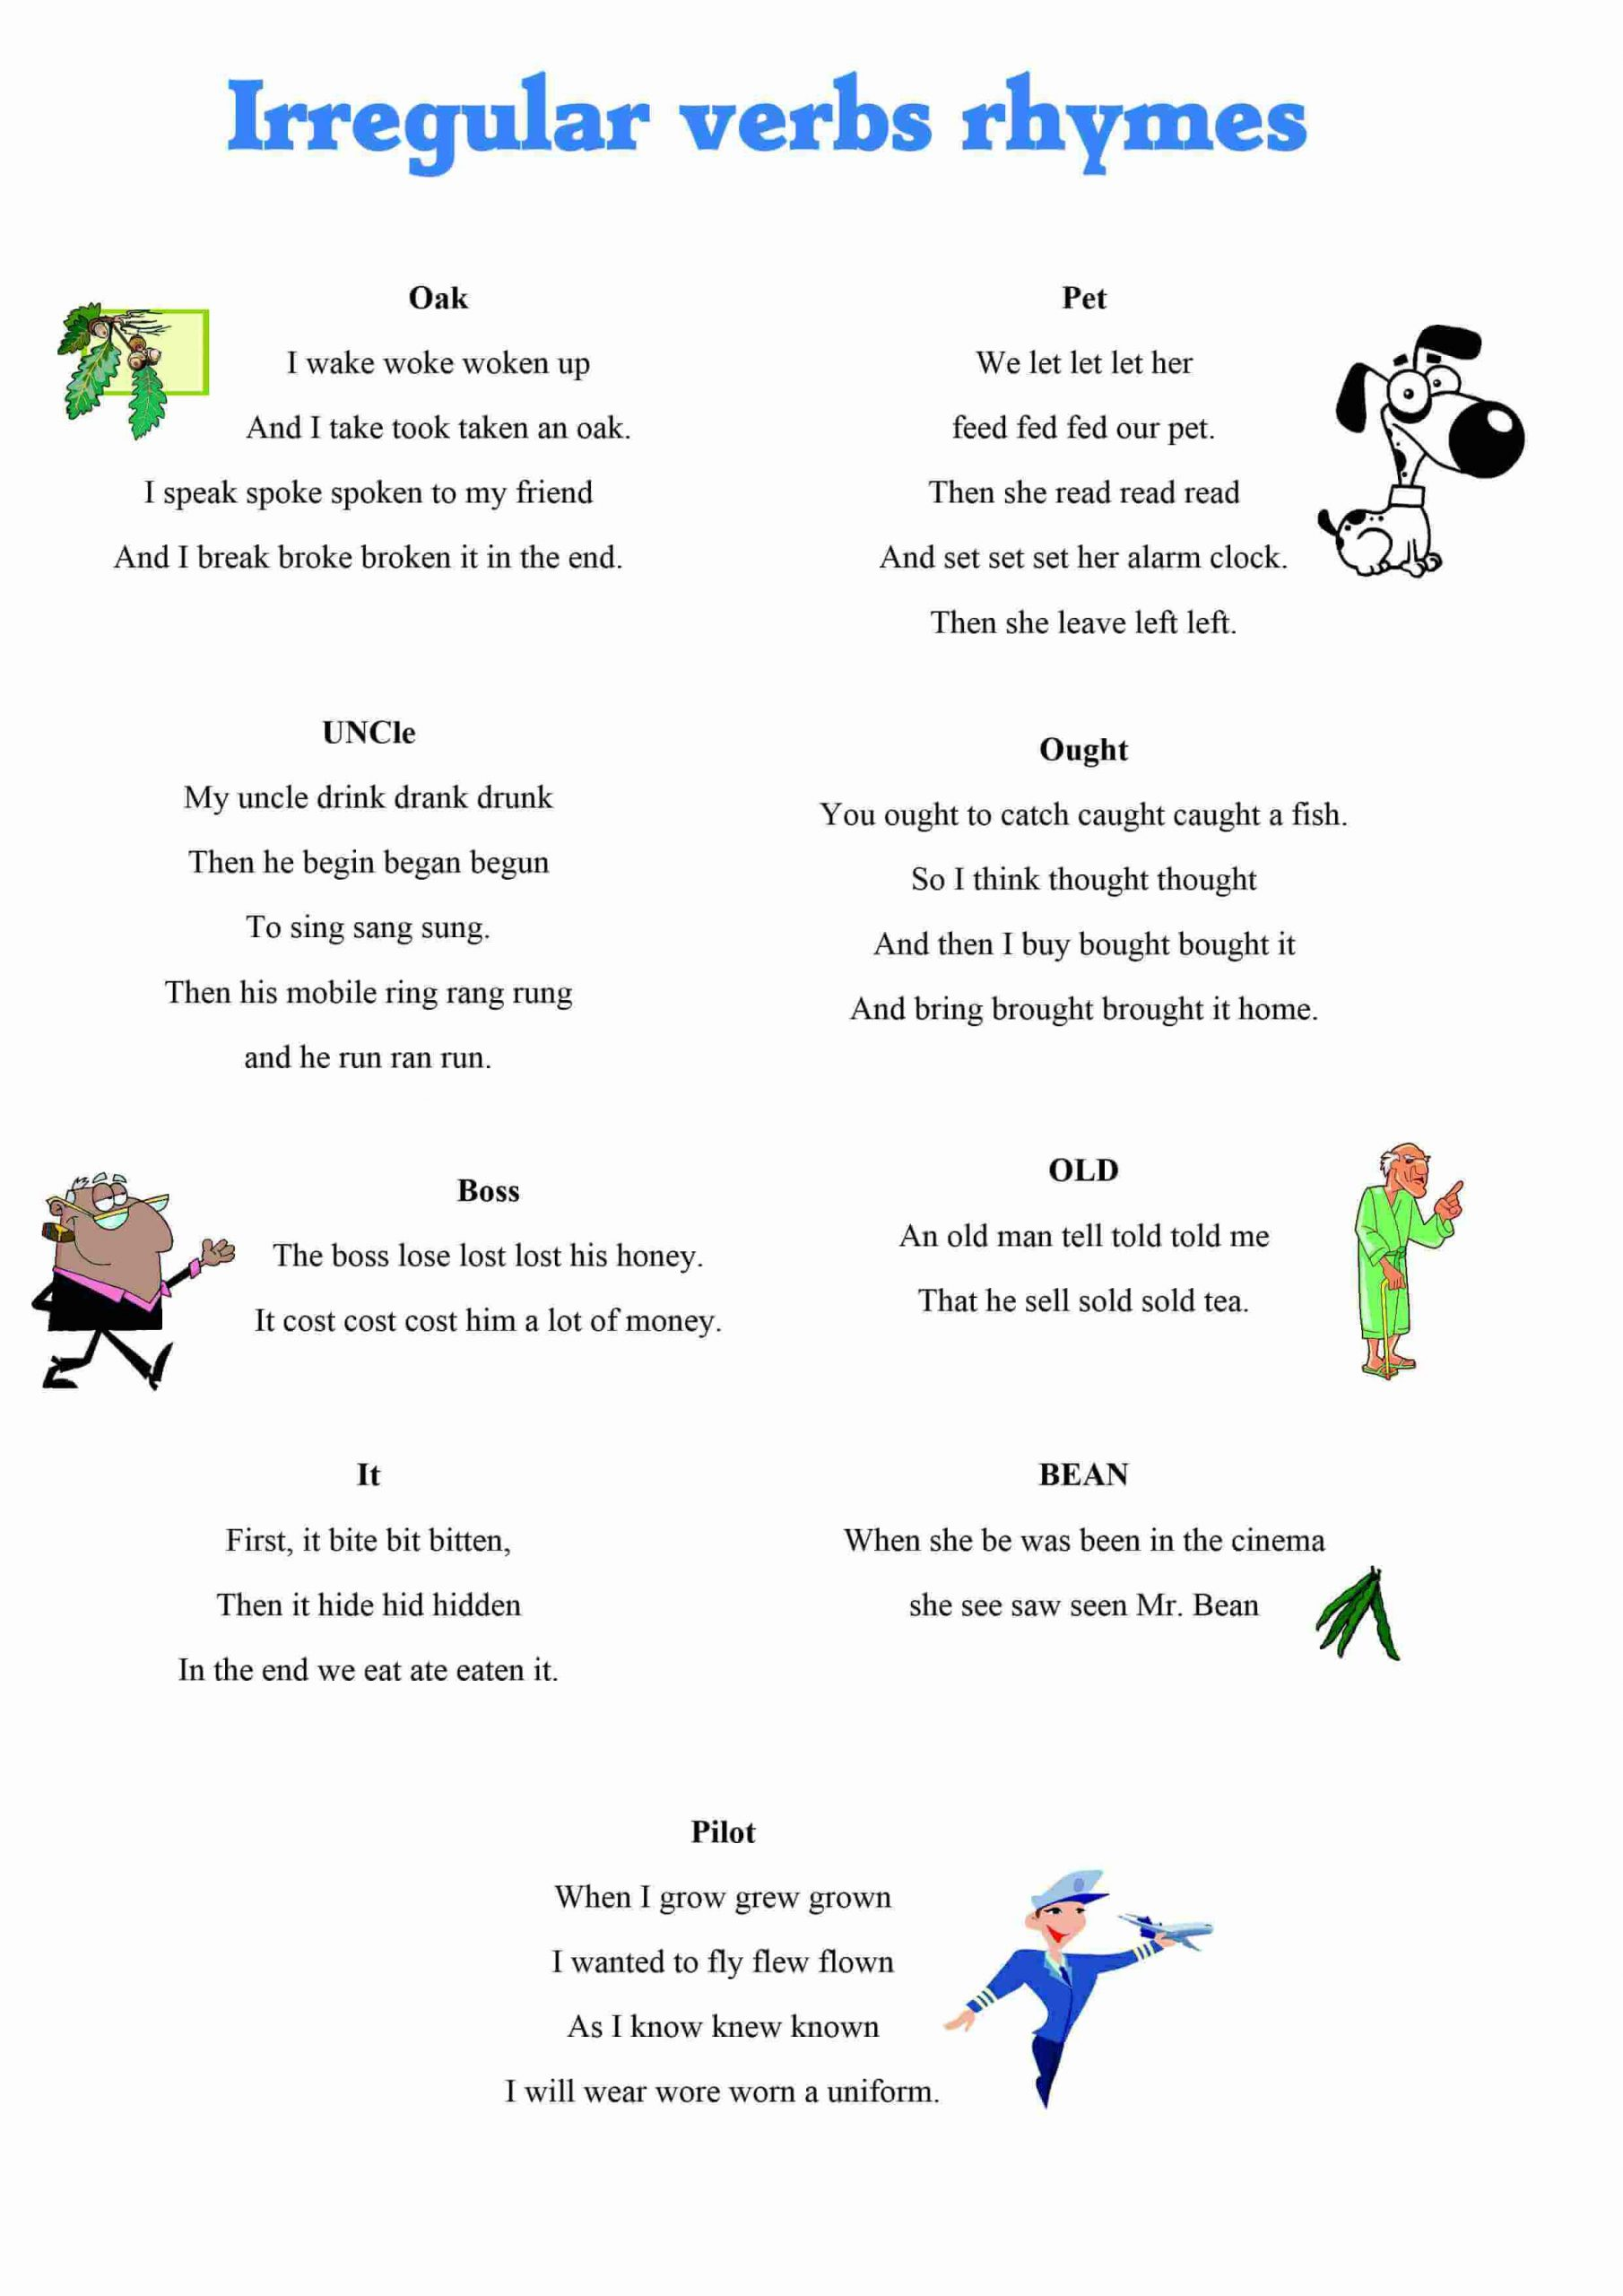 Irregular Verbs Worksheet Pdf Irregular Verbs Rhymes Games to Learn English